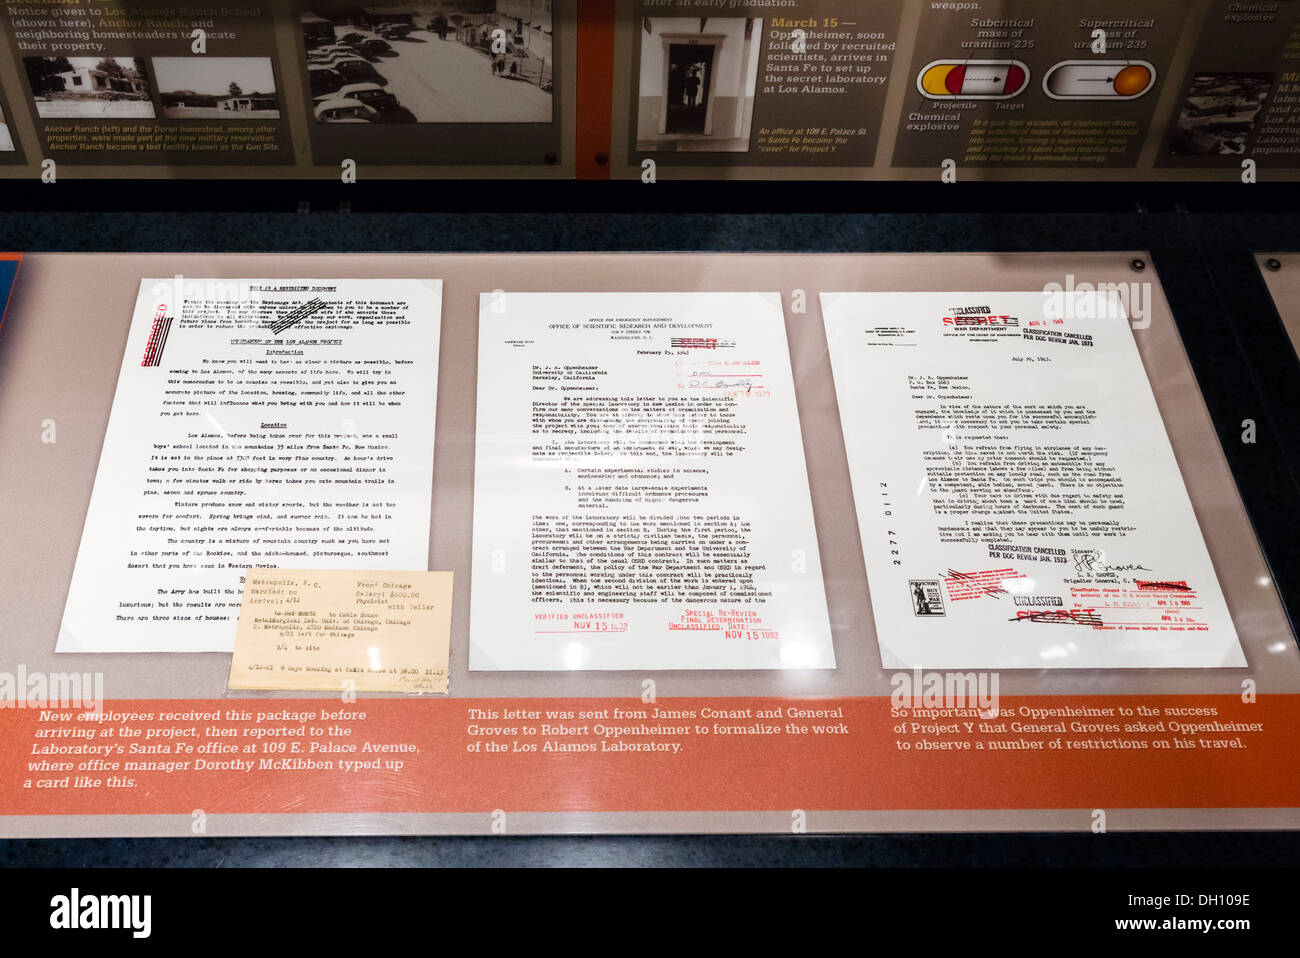 Original Oppenheimer letters connected to the Manhattan Project, Bradbury Science Museum, Los Alamos, New Mexico, USA - Stock Image